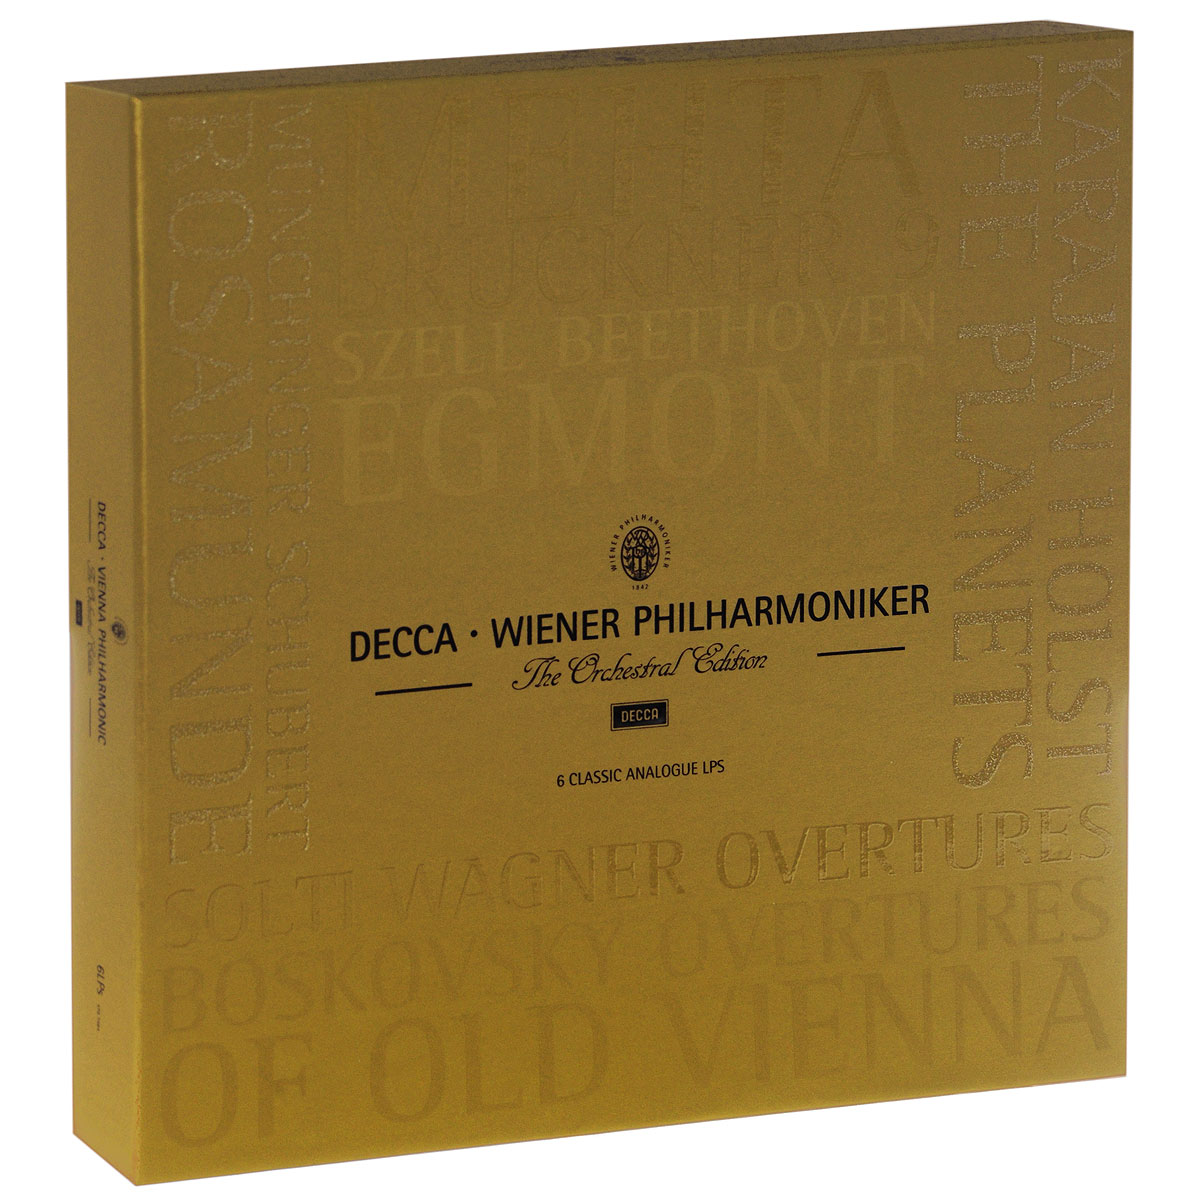 Норберт Балатш,Wiener Staatsopernchor,Yachmi Rohangiz,Вальтер Лехмайер,Пилар Лорингэр Decca. Wiener Philharmoniker. The Orchestral Edition (6 LP) франц шуберт schubert symphonie no 9 rosamunde ouverture die zauberharfe